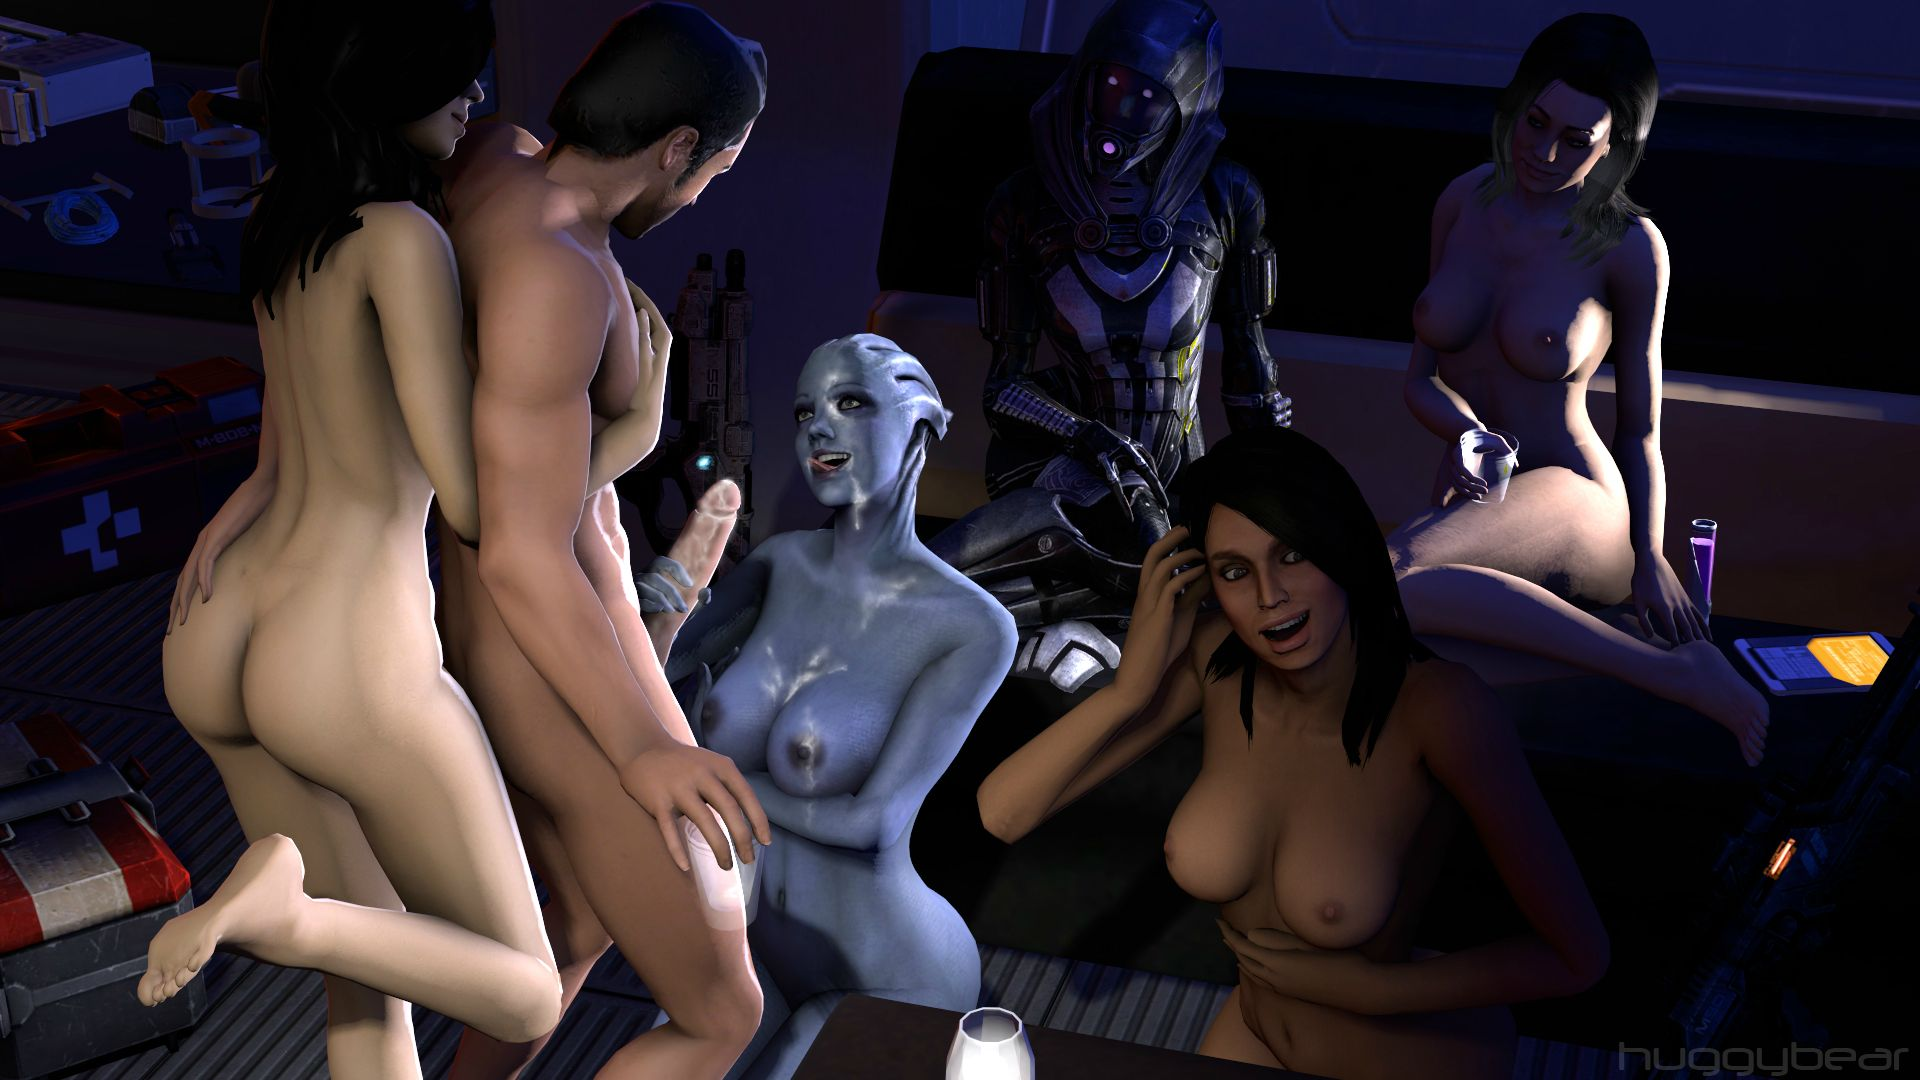 Mass effect ashley williams nude mod hentia scene